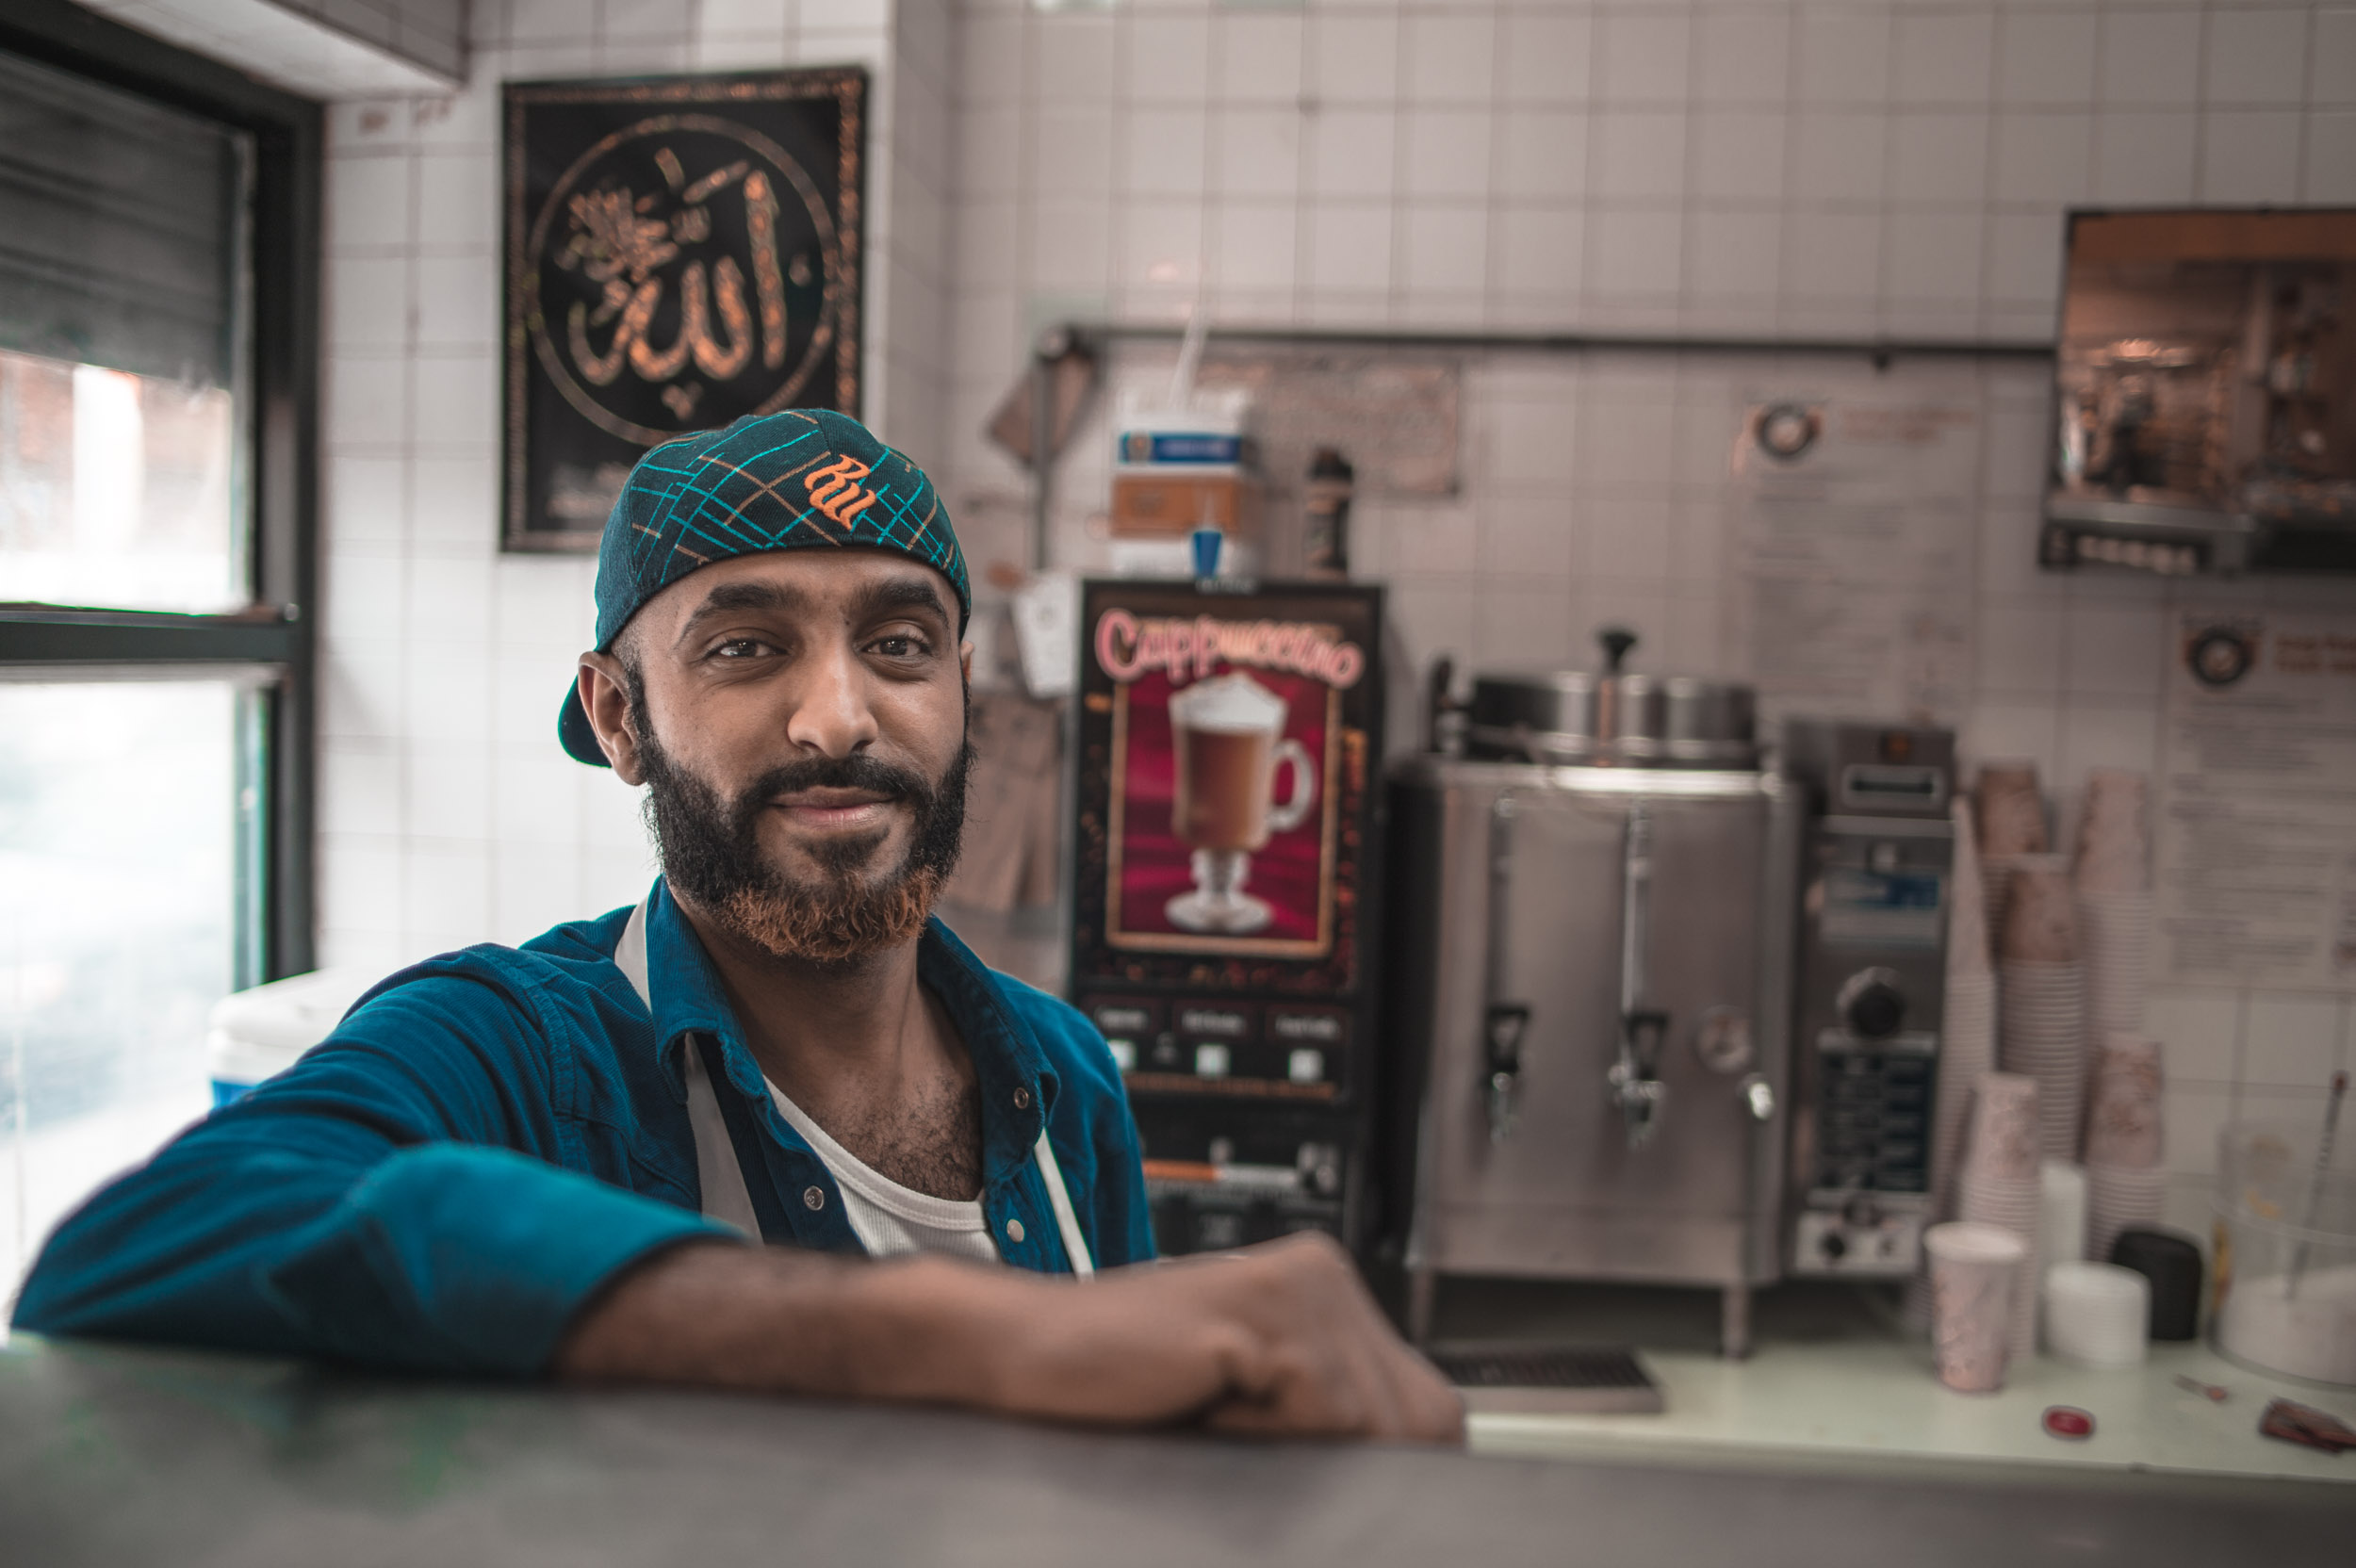 Ahmed , a Yemeni New Yorker, working the grill inside a Fort Greene bodega.